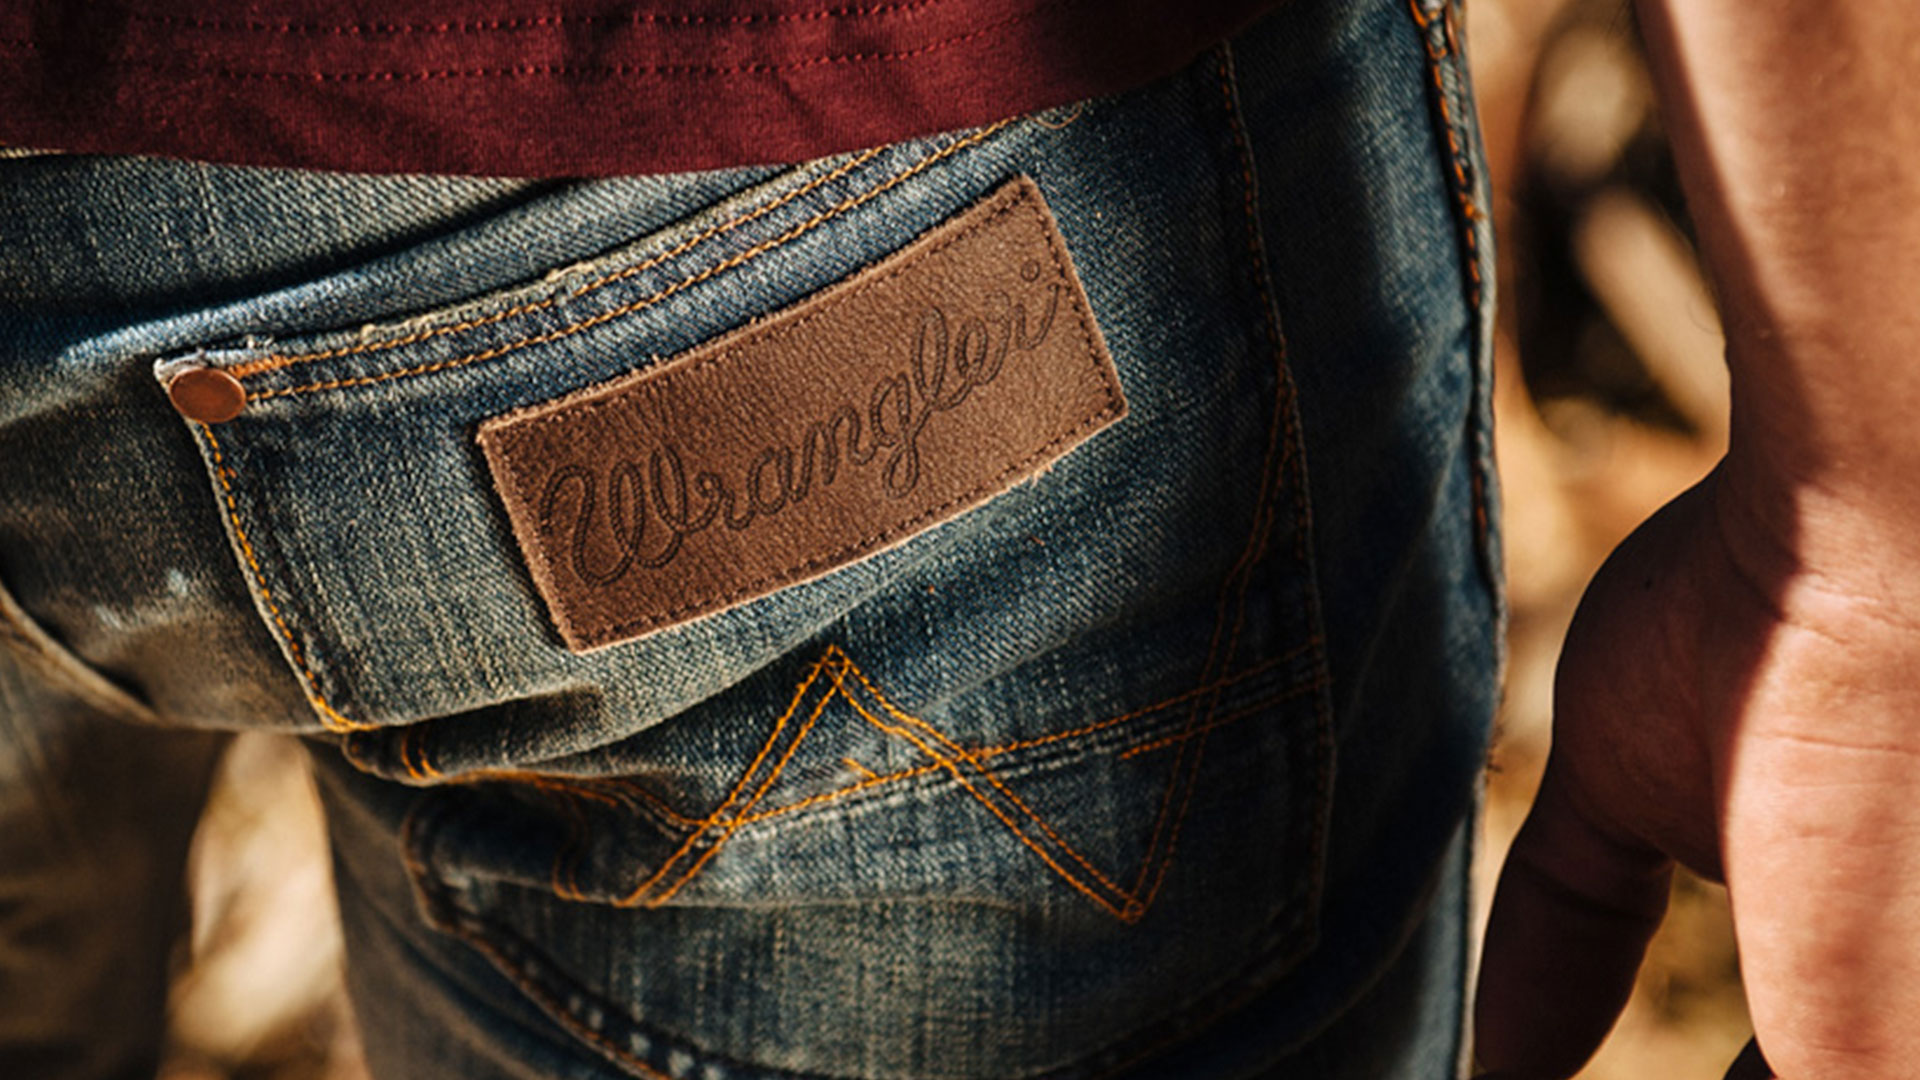 Wranglers History: Jeans Through Ages